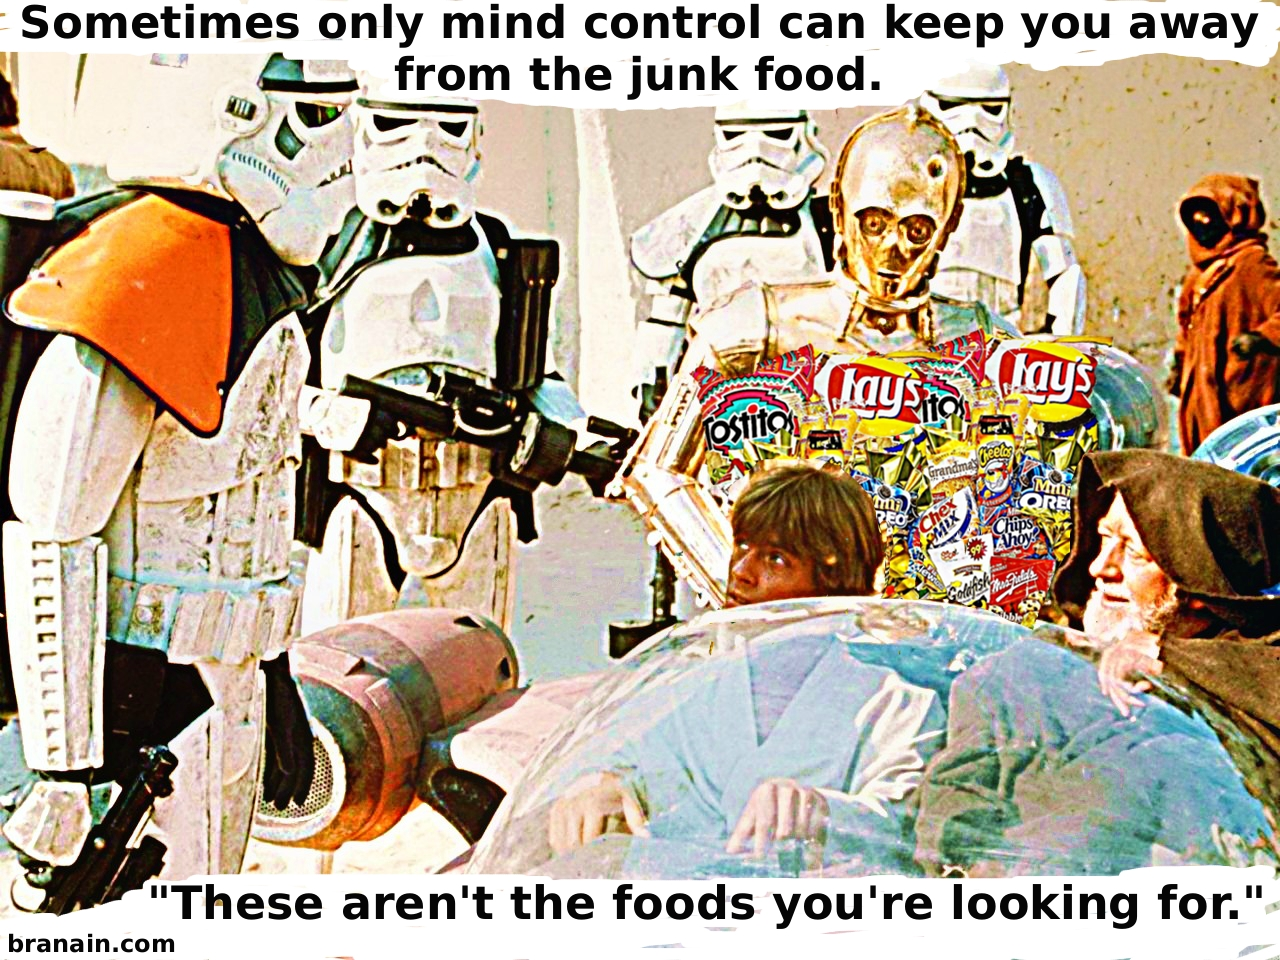 Star Wars diet - how to resist junk food